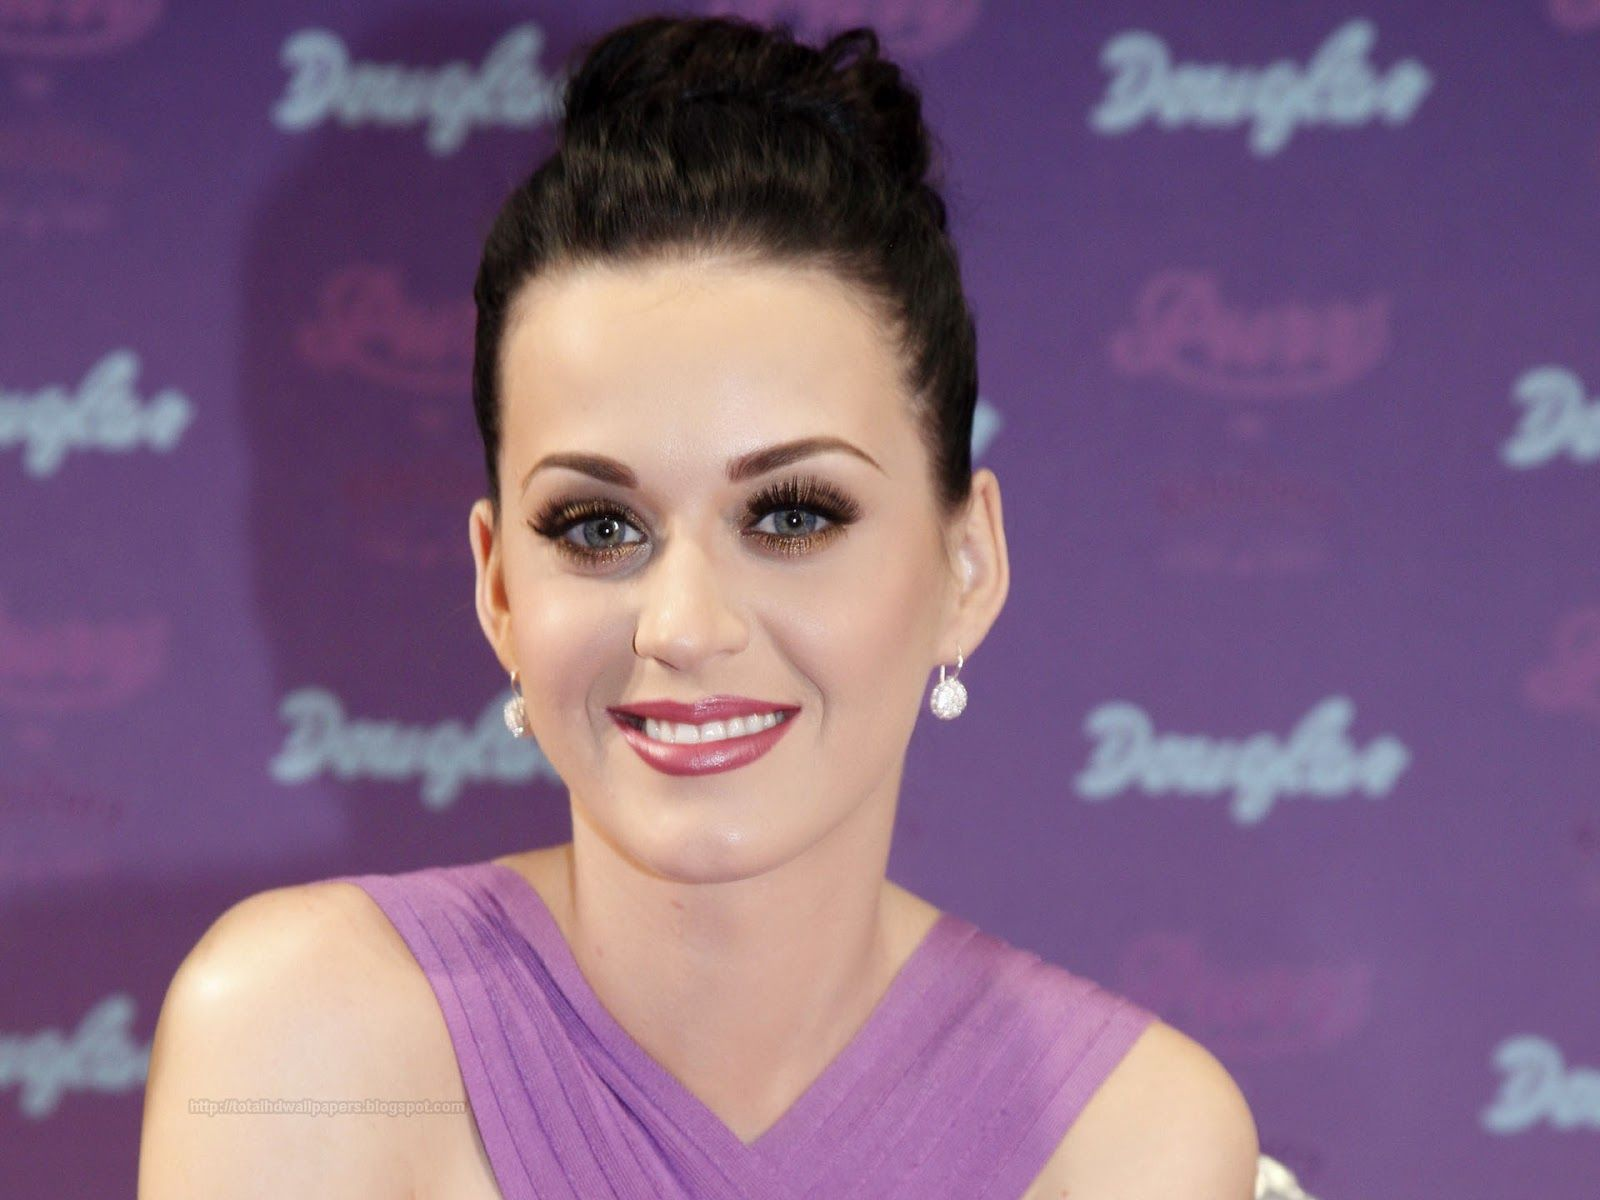 Katy Perry Hd Wallpapers Music Katy Perry Wallpaper Katy Perry